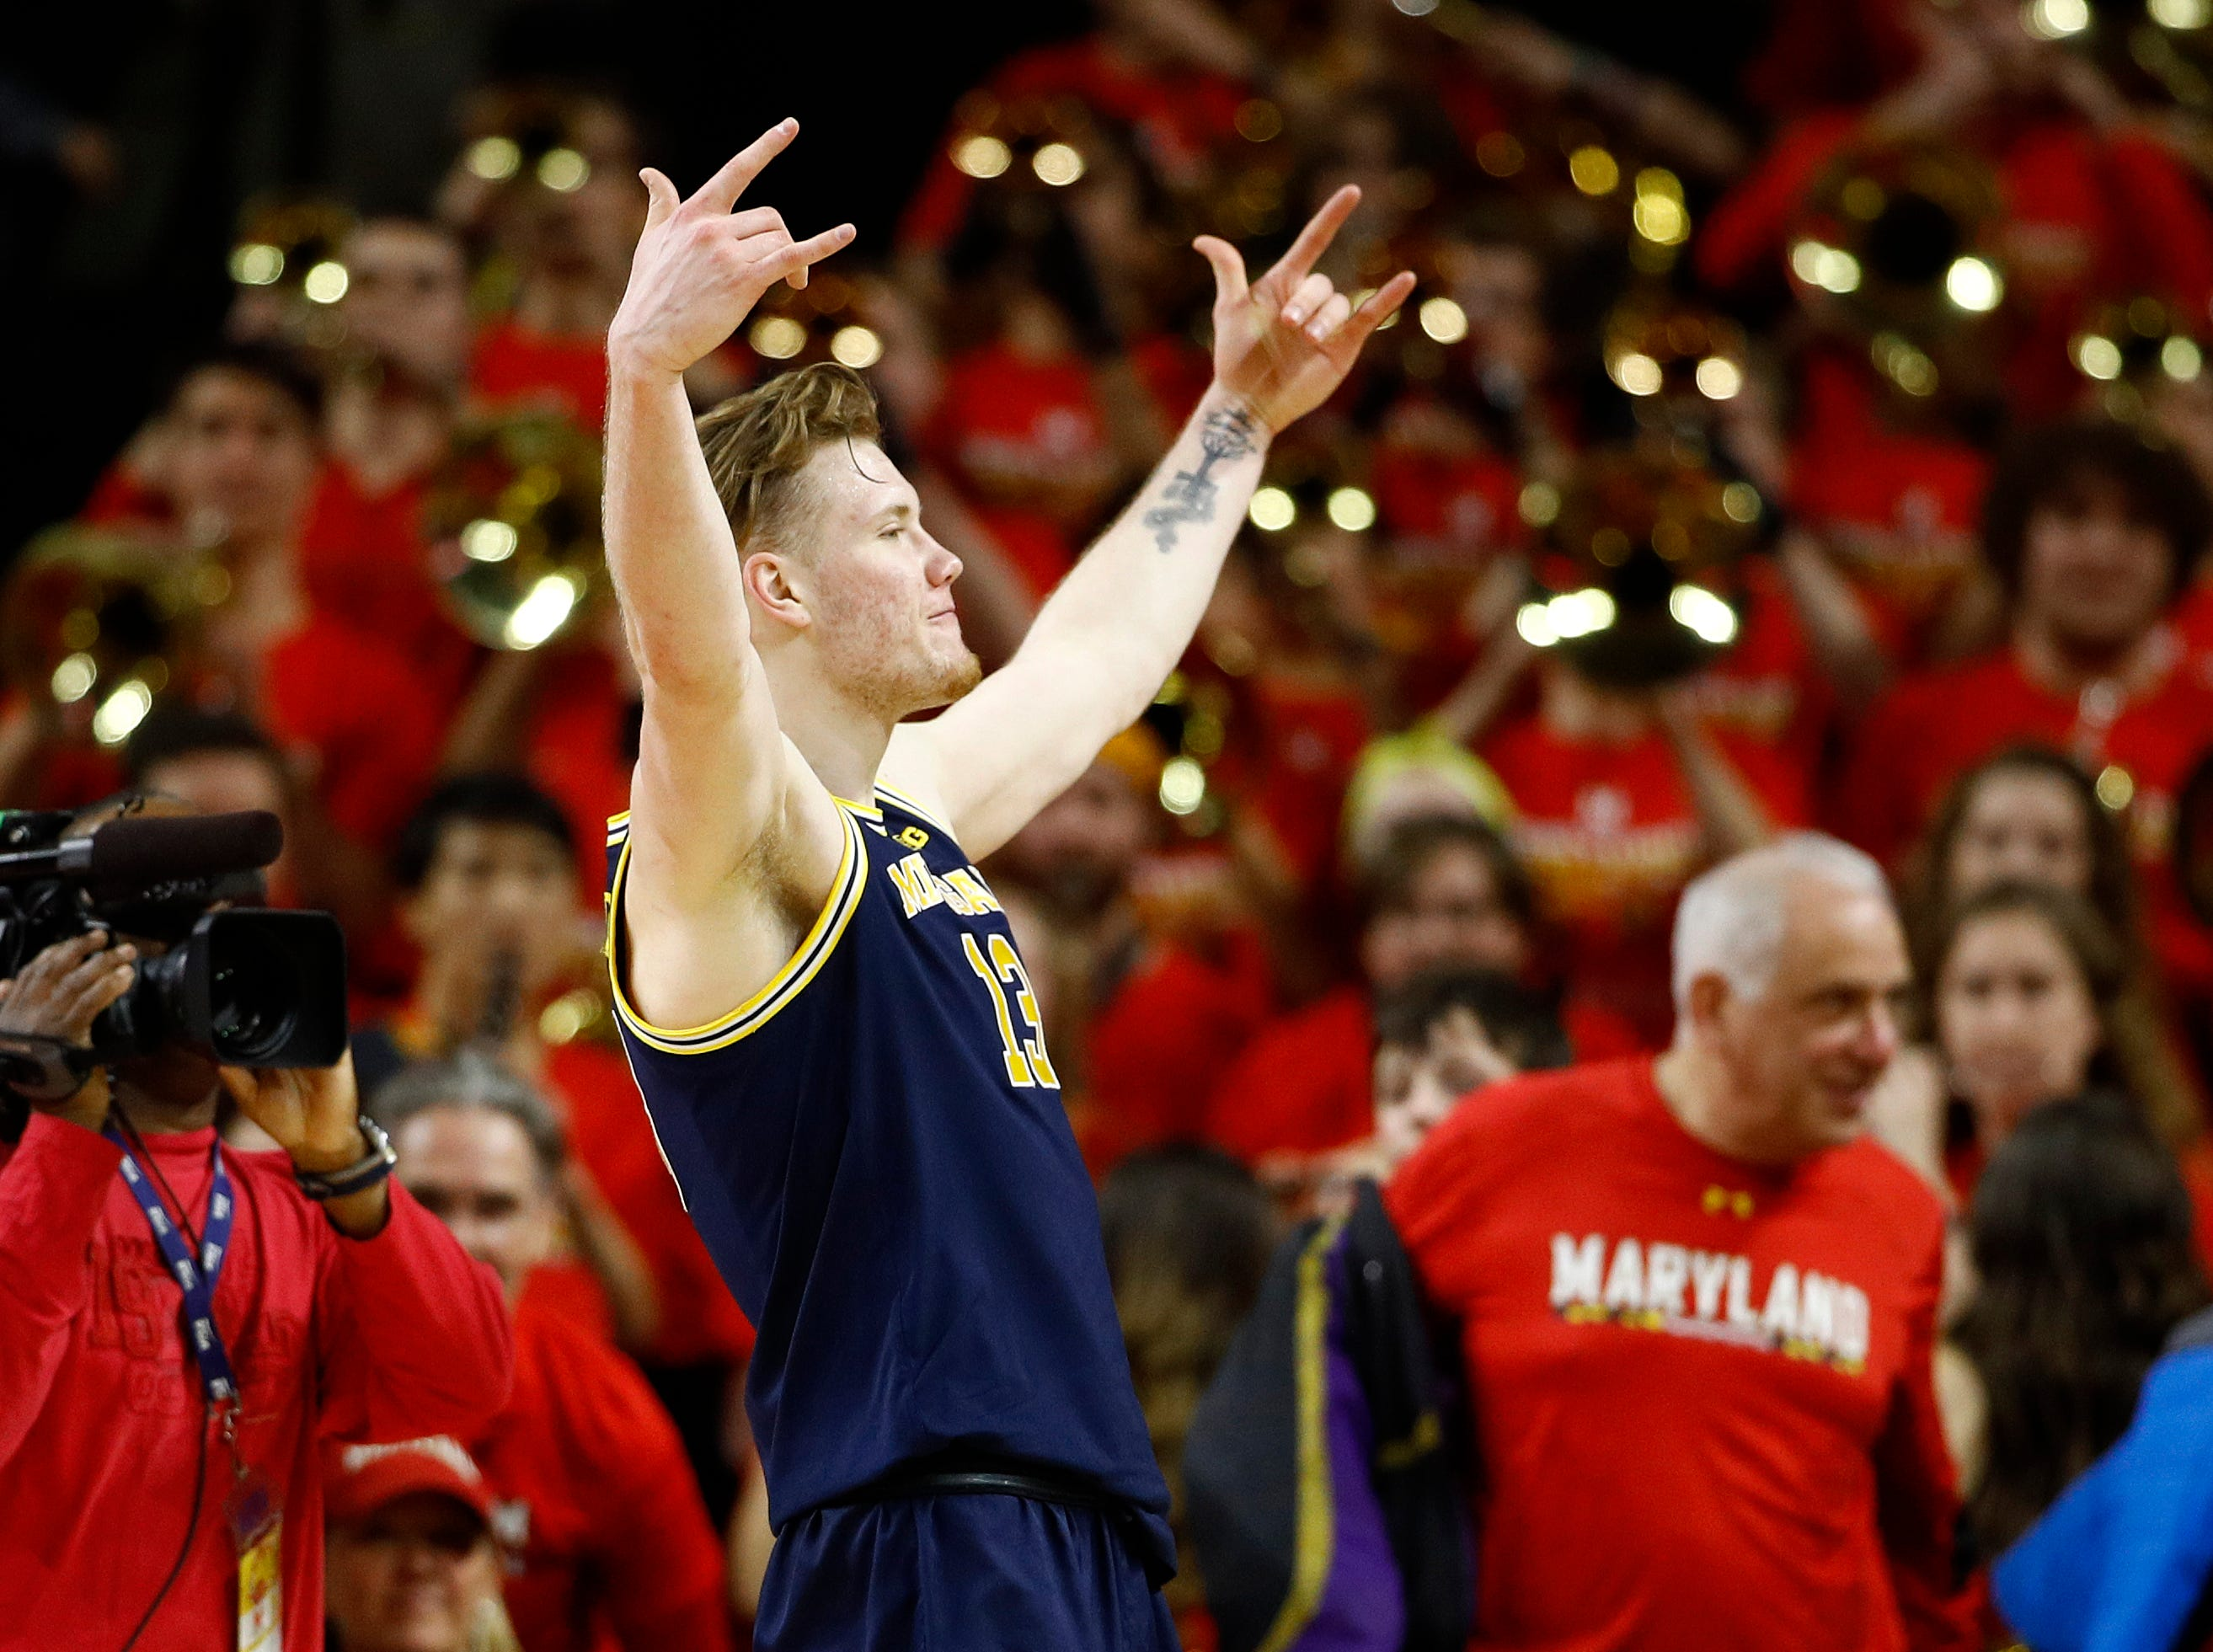 Michigan forward Ignas Brazdeikis, of Canada, gestures toward spectators in the final moments of an NCAA college basketball game against Maryland, Sunday, March 3, 2019, in College Park, Md. Brazdeikis contributed a game-high 21 points to Michigan's 69-62 win.